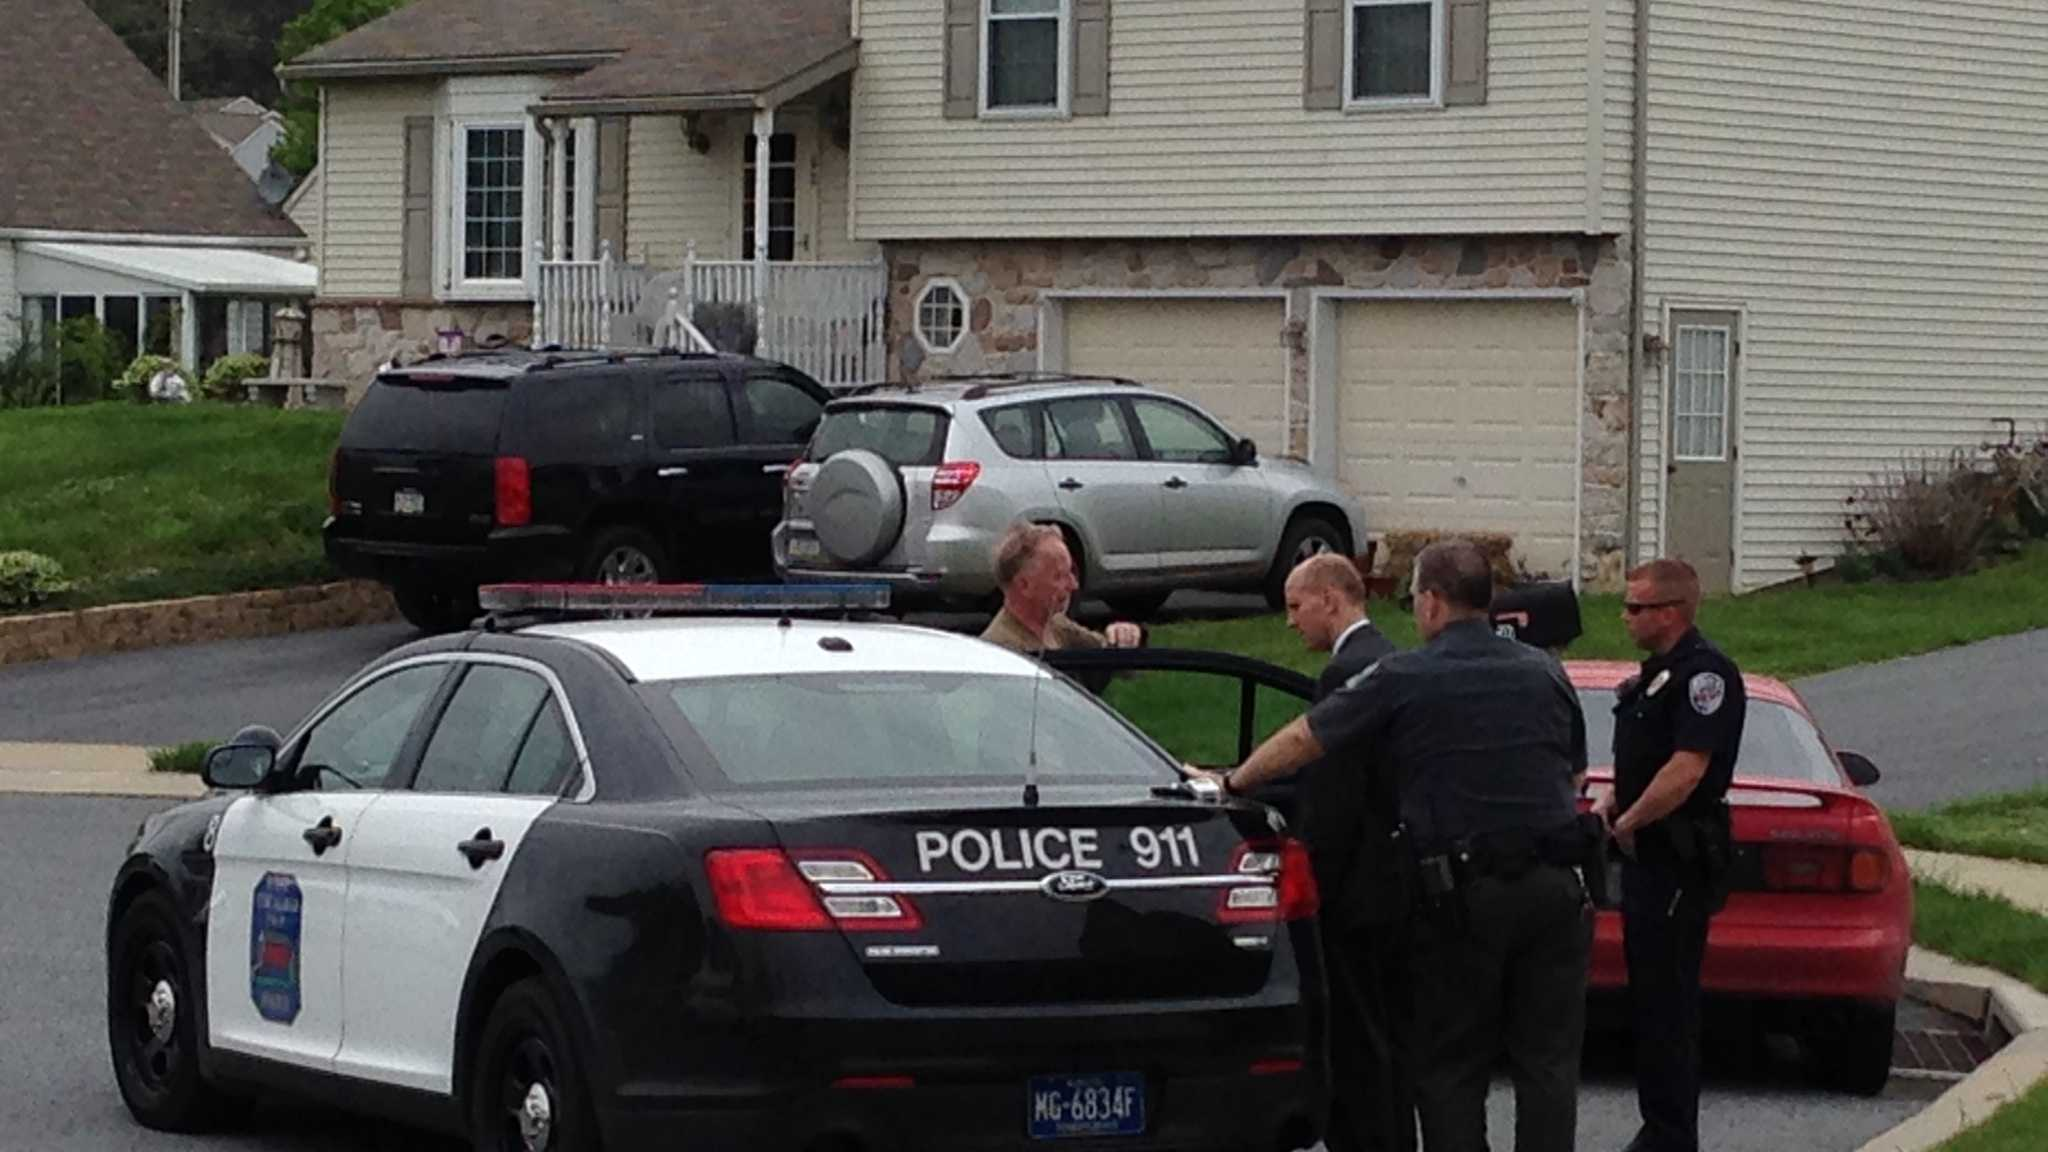 Police were dispatched to the residence of a man threatening to harm himself in East Cocalico Township on Wednesday afternoon.